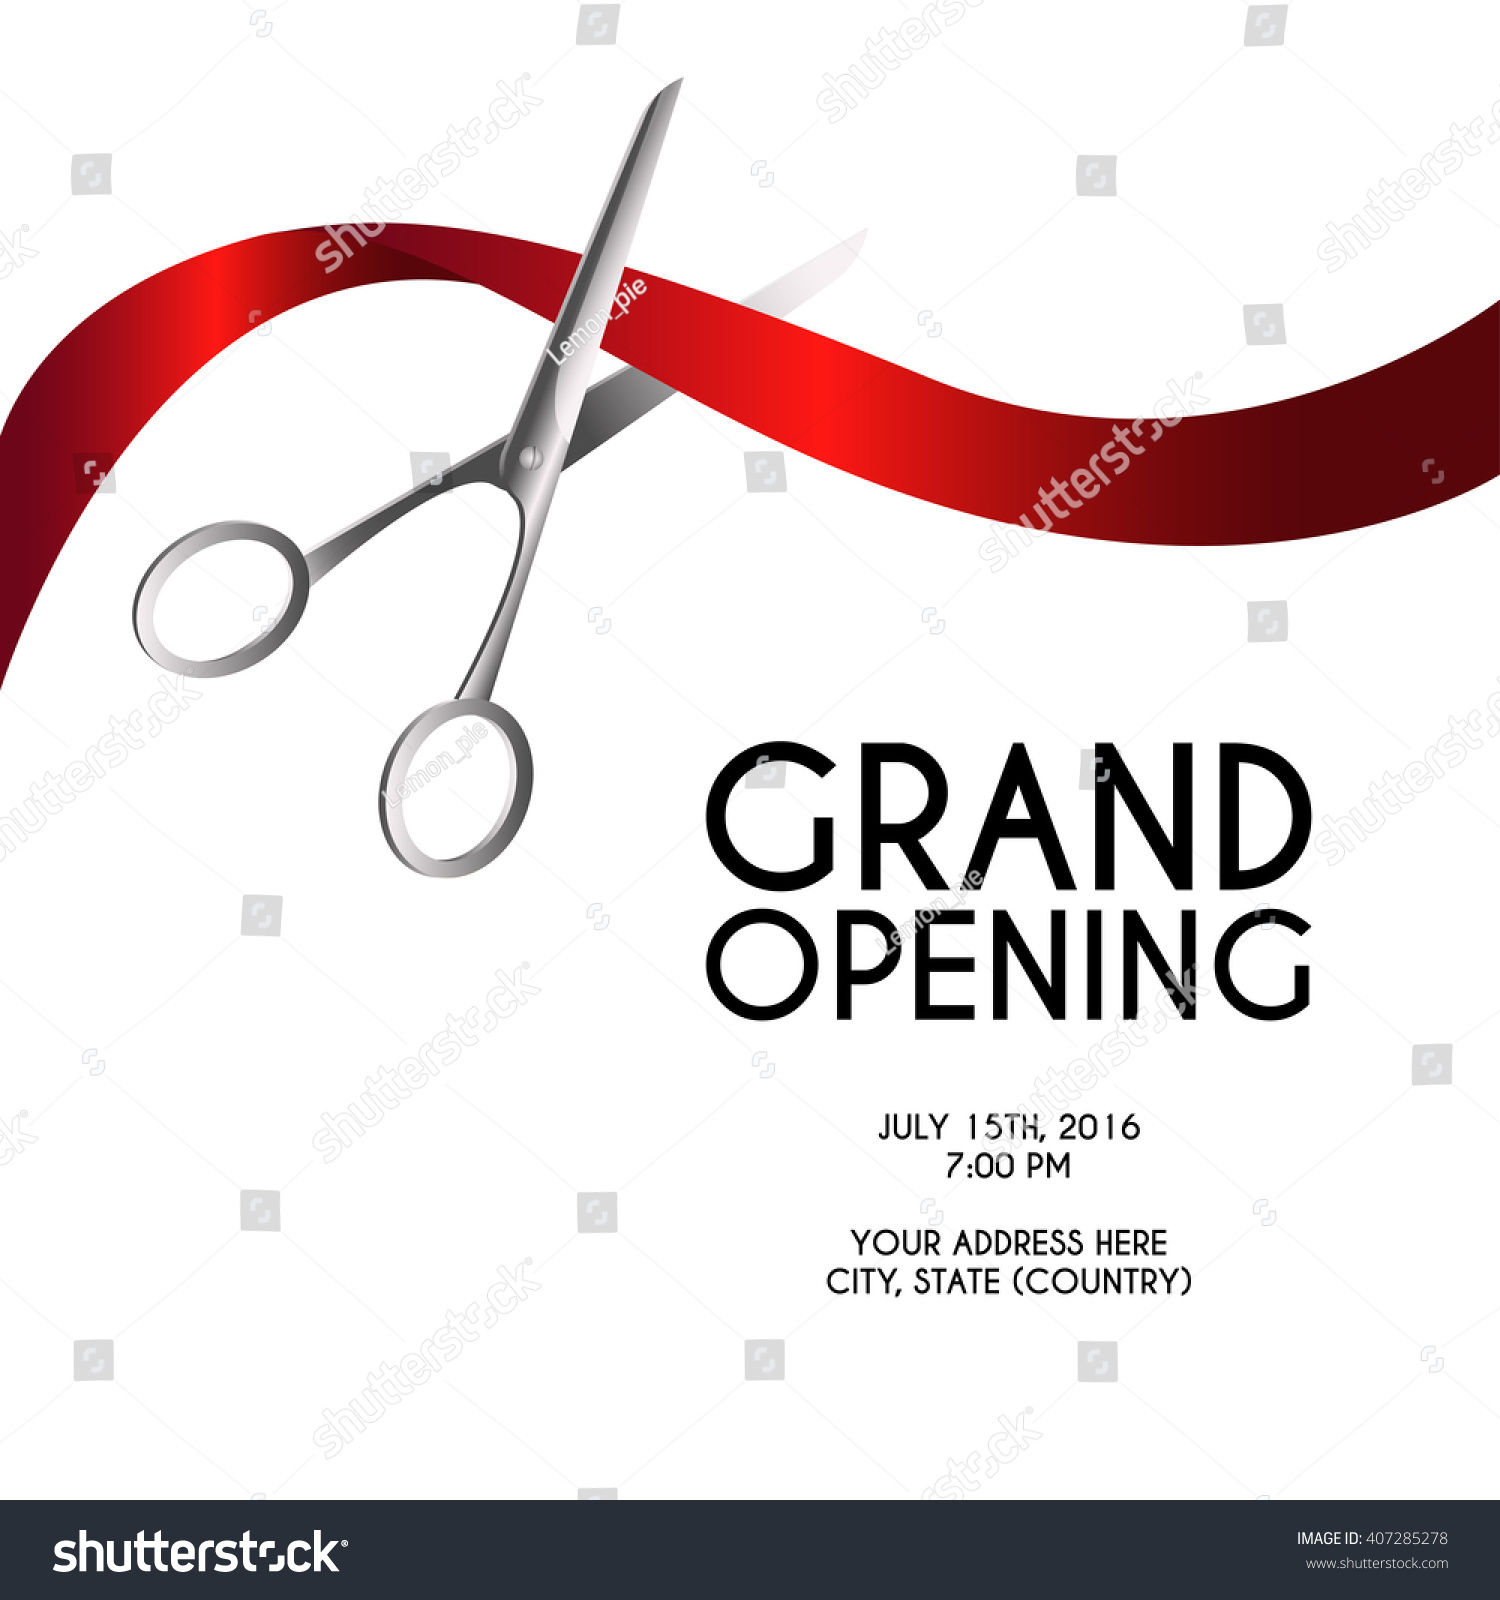 Grand Opening Poster Mock Up With Silver Scissors Cutting